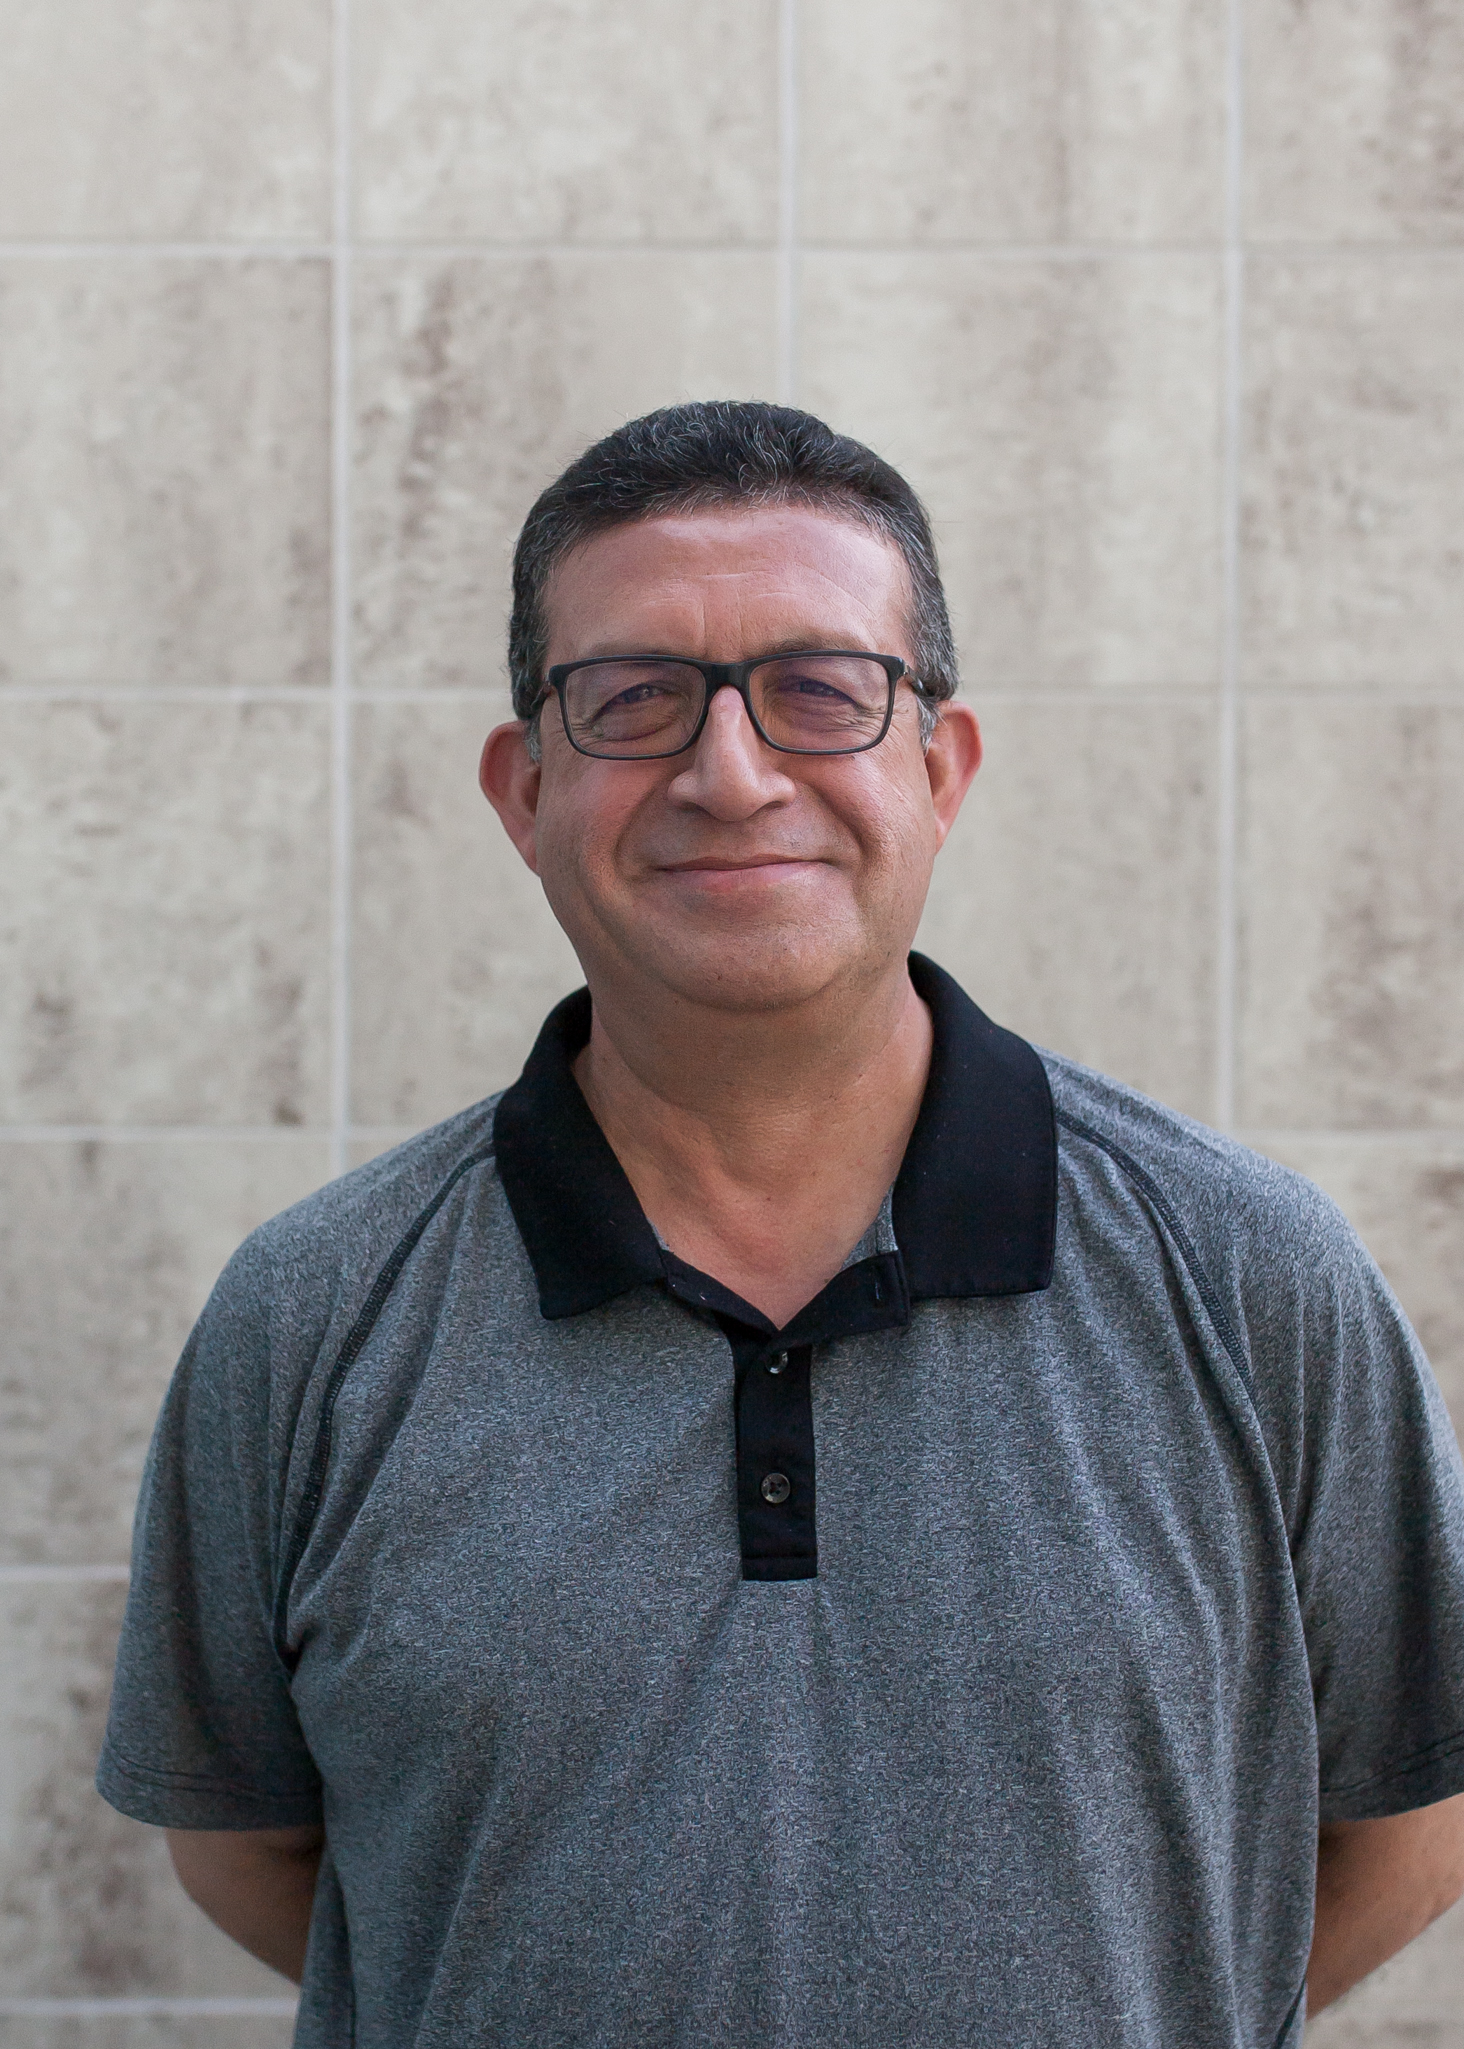 Whittier   Wednesday 6:30PM   David Soto, House Church Pastor